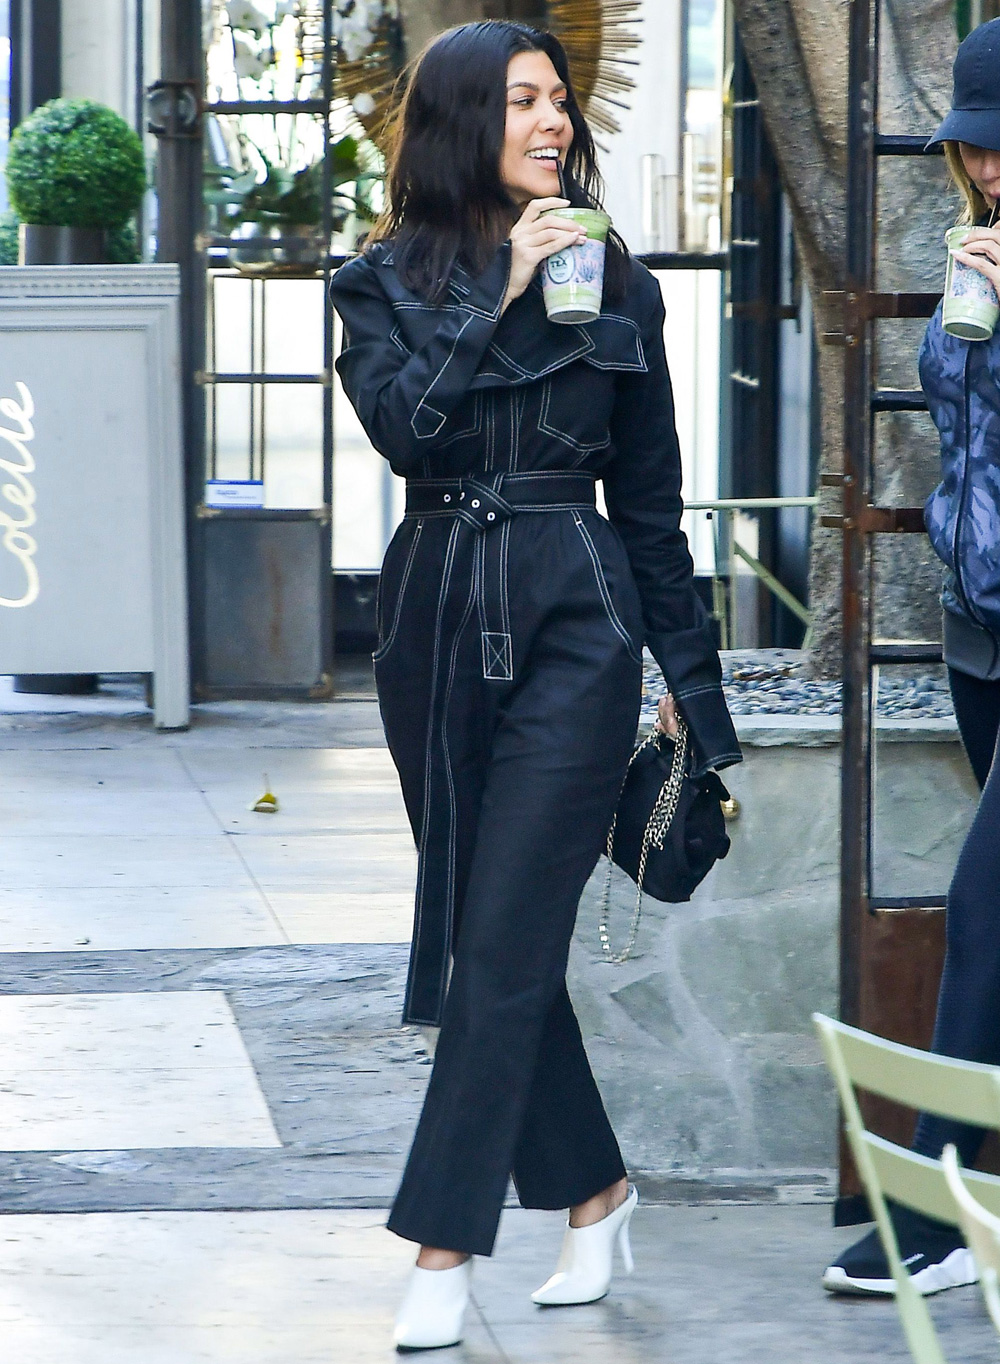 Kourtney Kardashian Out And About In Los Angeles About Her